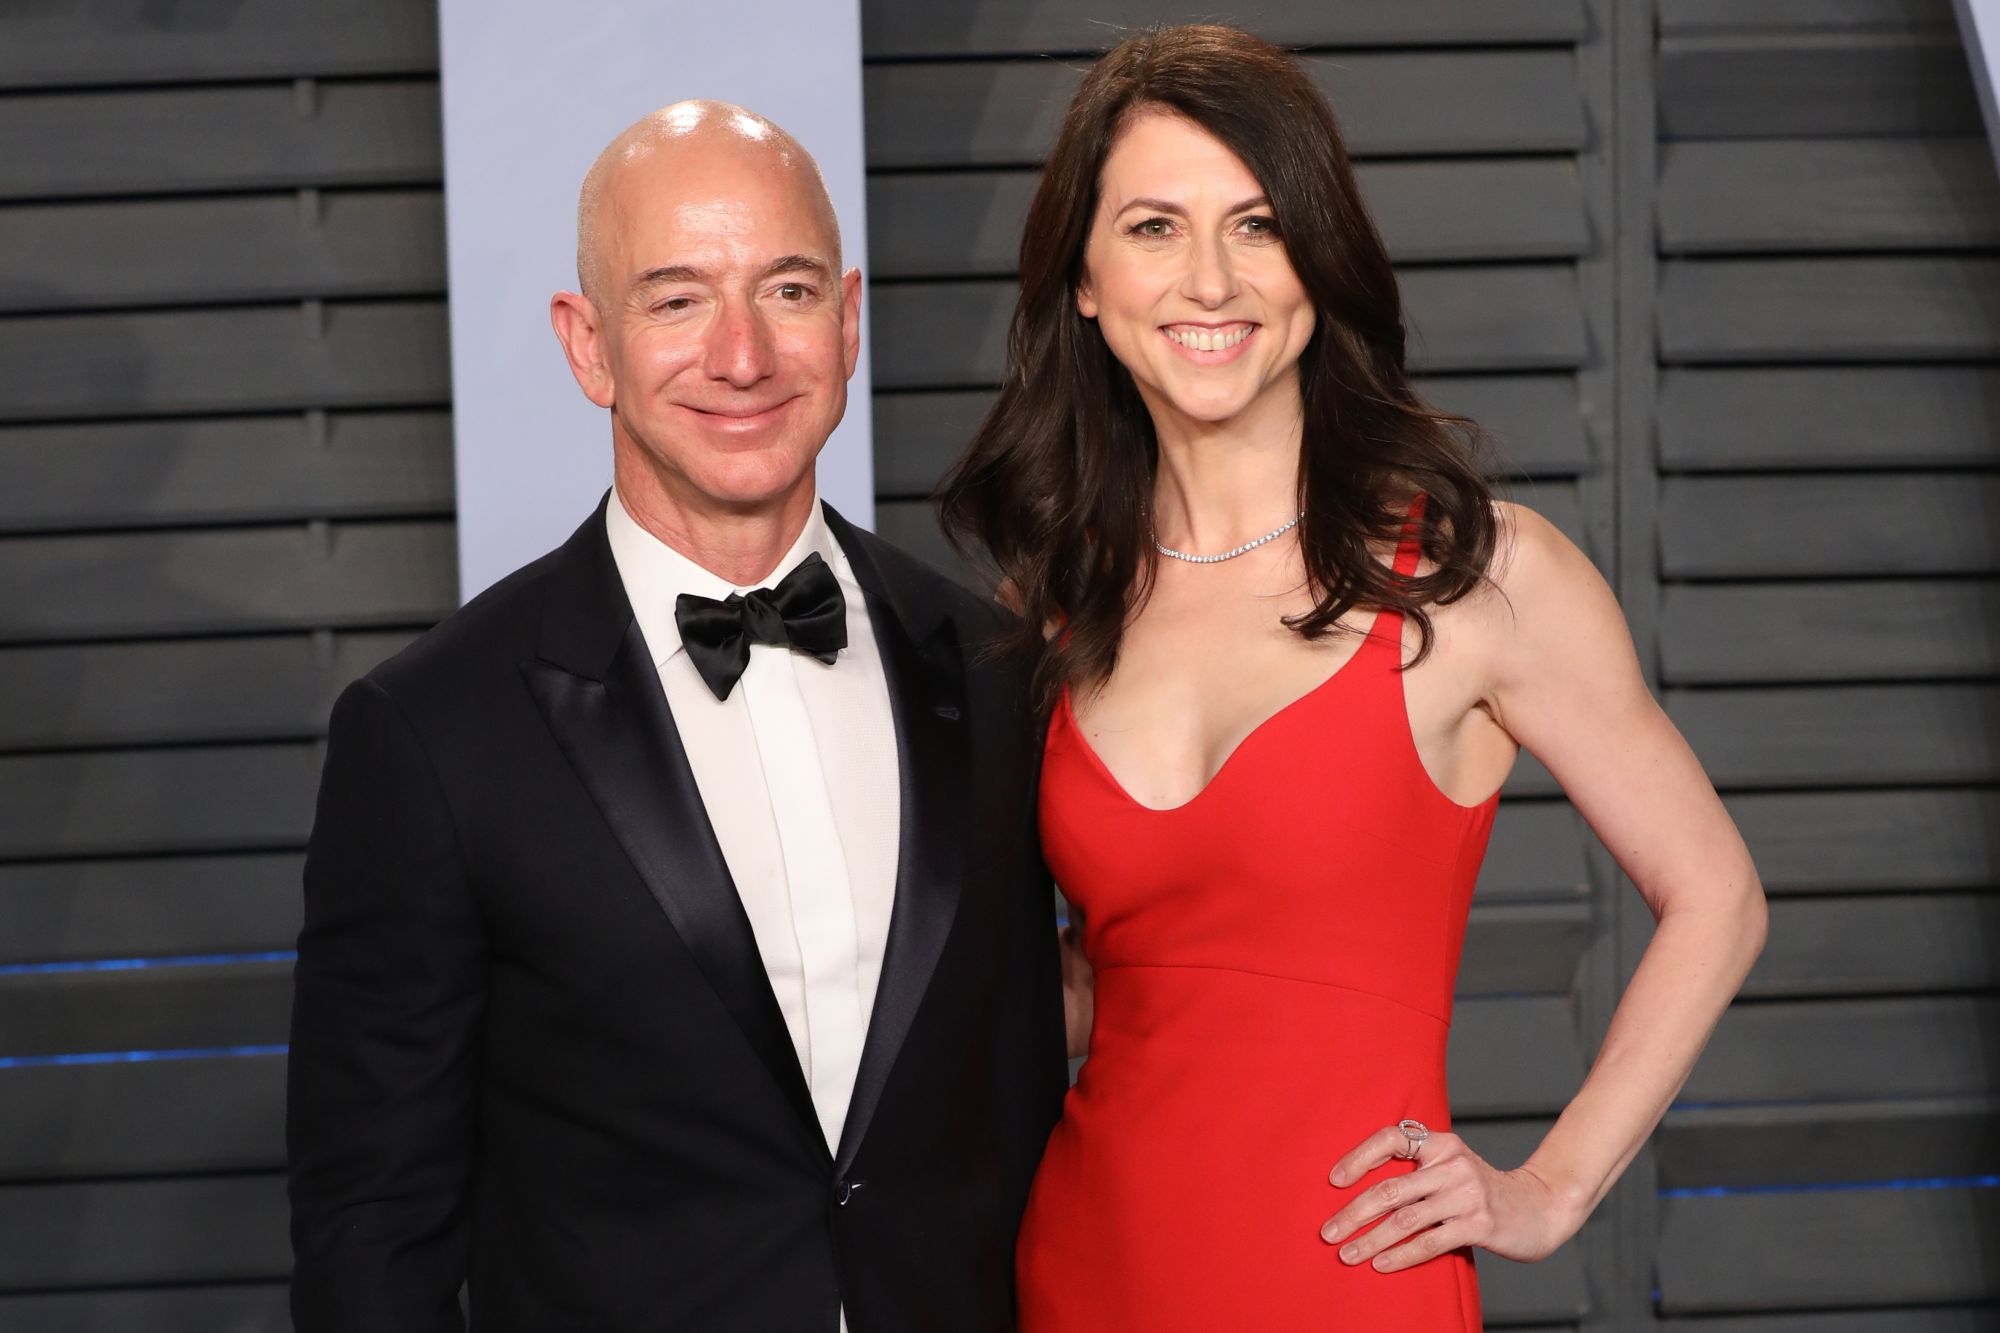 BEVERLY HILLS, CALIFORNIA - MARCH 04: Jeff Bezos (L) and MacKenzie Bezos attends the 2018 Vanity Fair Oscar Party hosted by Radhika Jones at Wallis Annenberg Center for the Performing Arts on March 04, 2018 in Beverly Hills, California. (Photo by Toni Anne Barson/Getty Images)